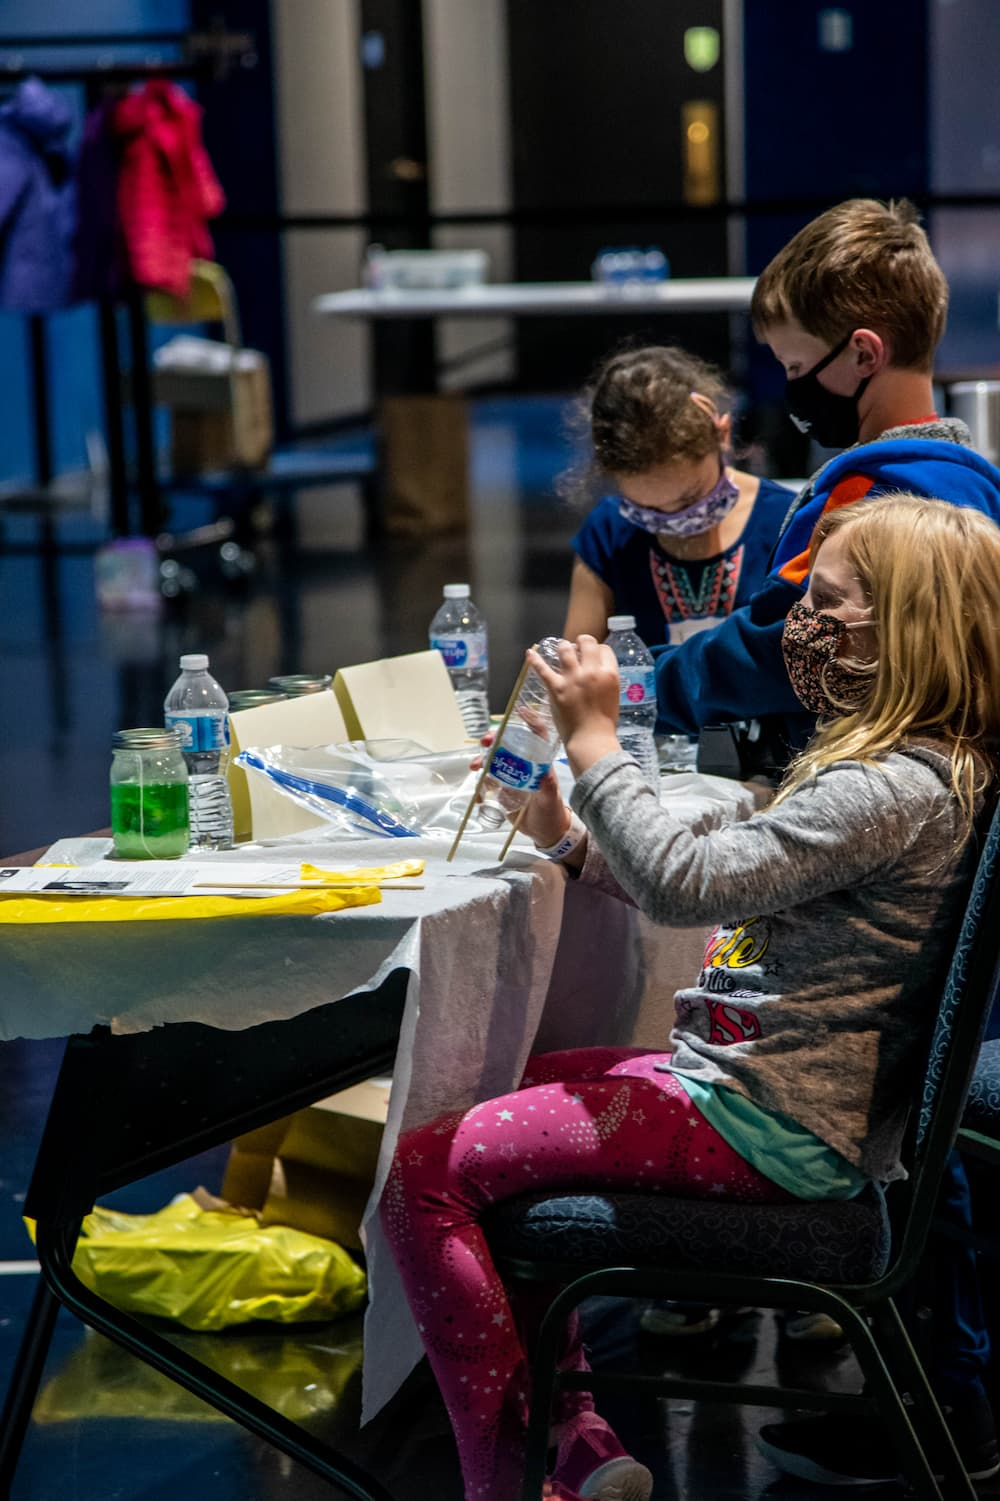 Kids on Out of This World Exhibit at Air Zoo